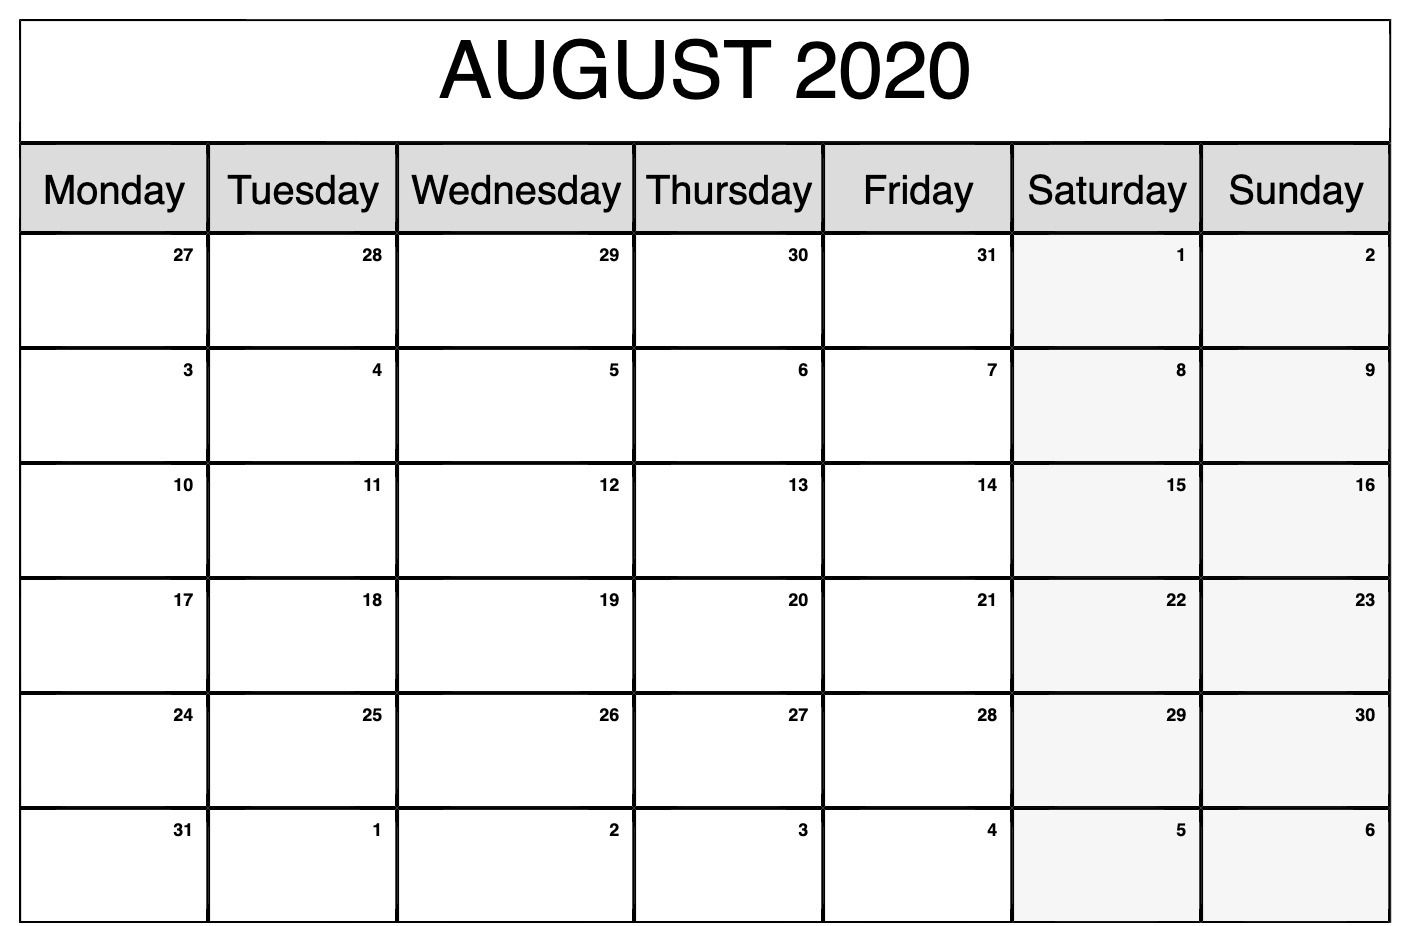 Monthly Calendar Template August 2020